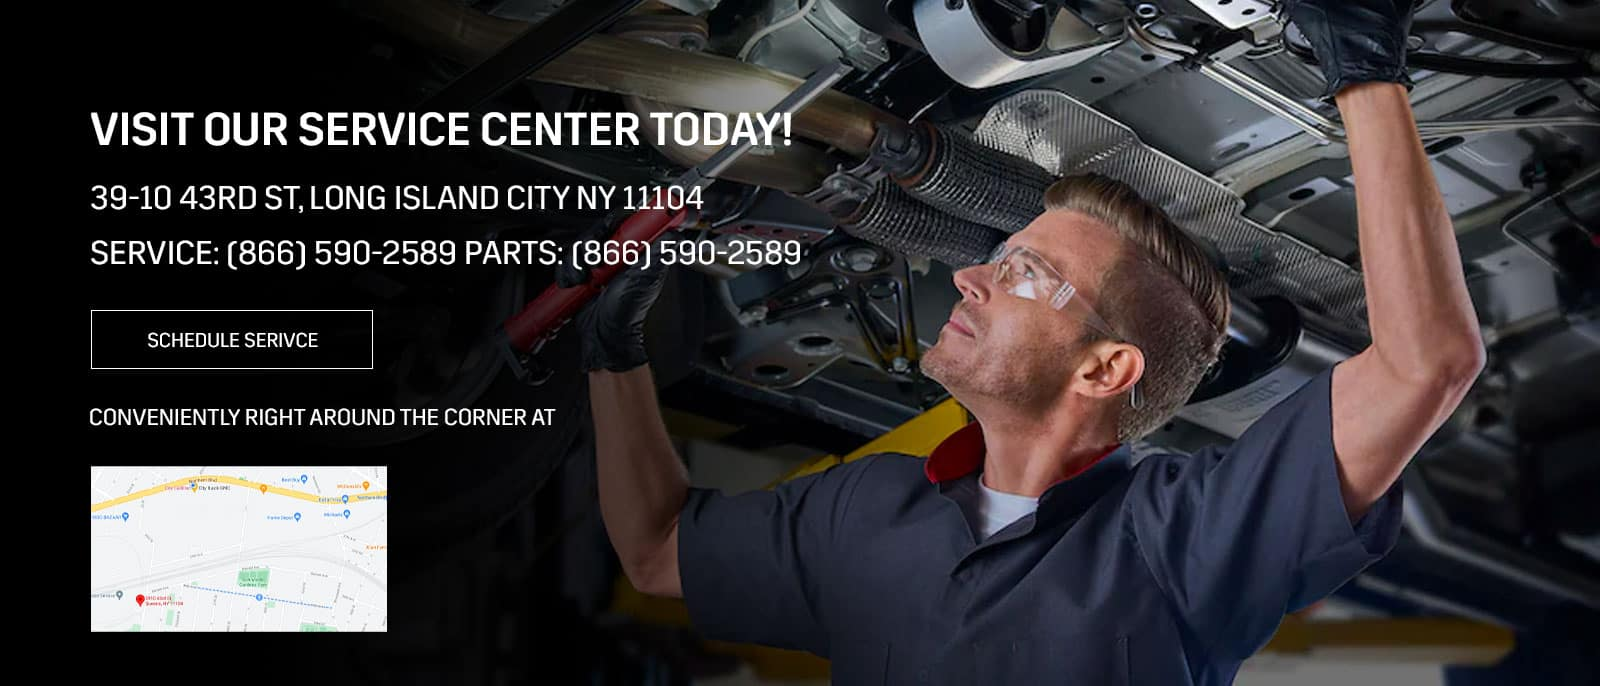 Visit Our Service Center Today! 39-10 43rd St, Long Island City NY 11104